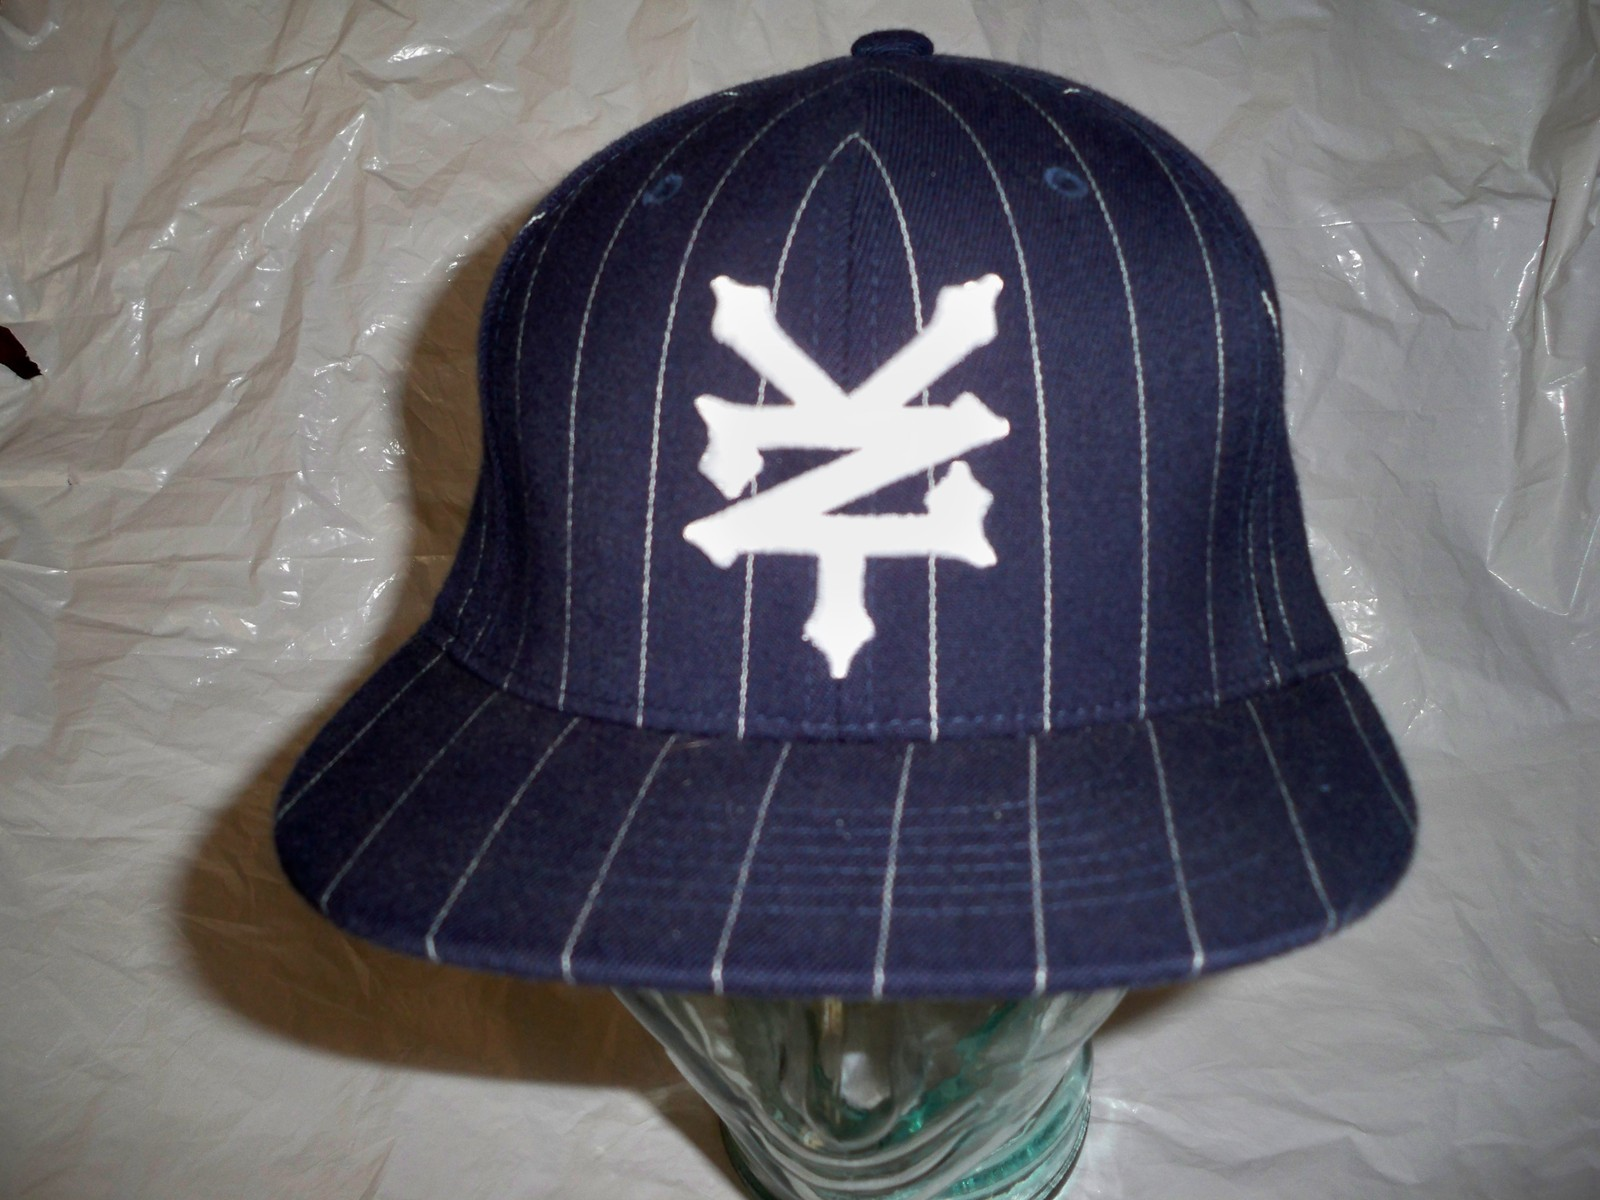 MEN'S ZOO YORK PINSTRIPE HAT/BALL-CAP/LID NAVY W/ WHITE EMBROIDERED LOGO NEW $35